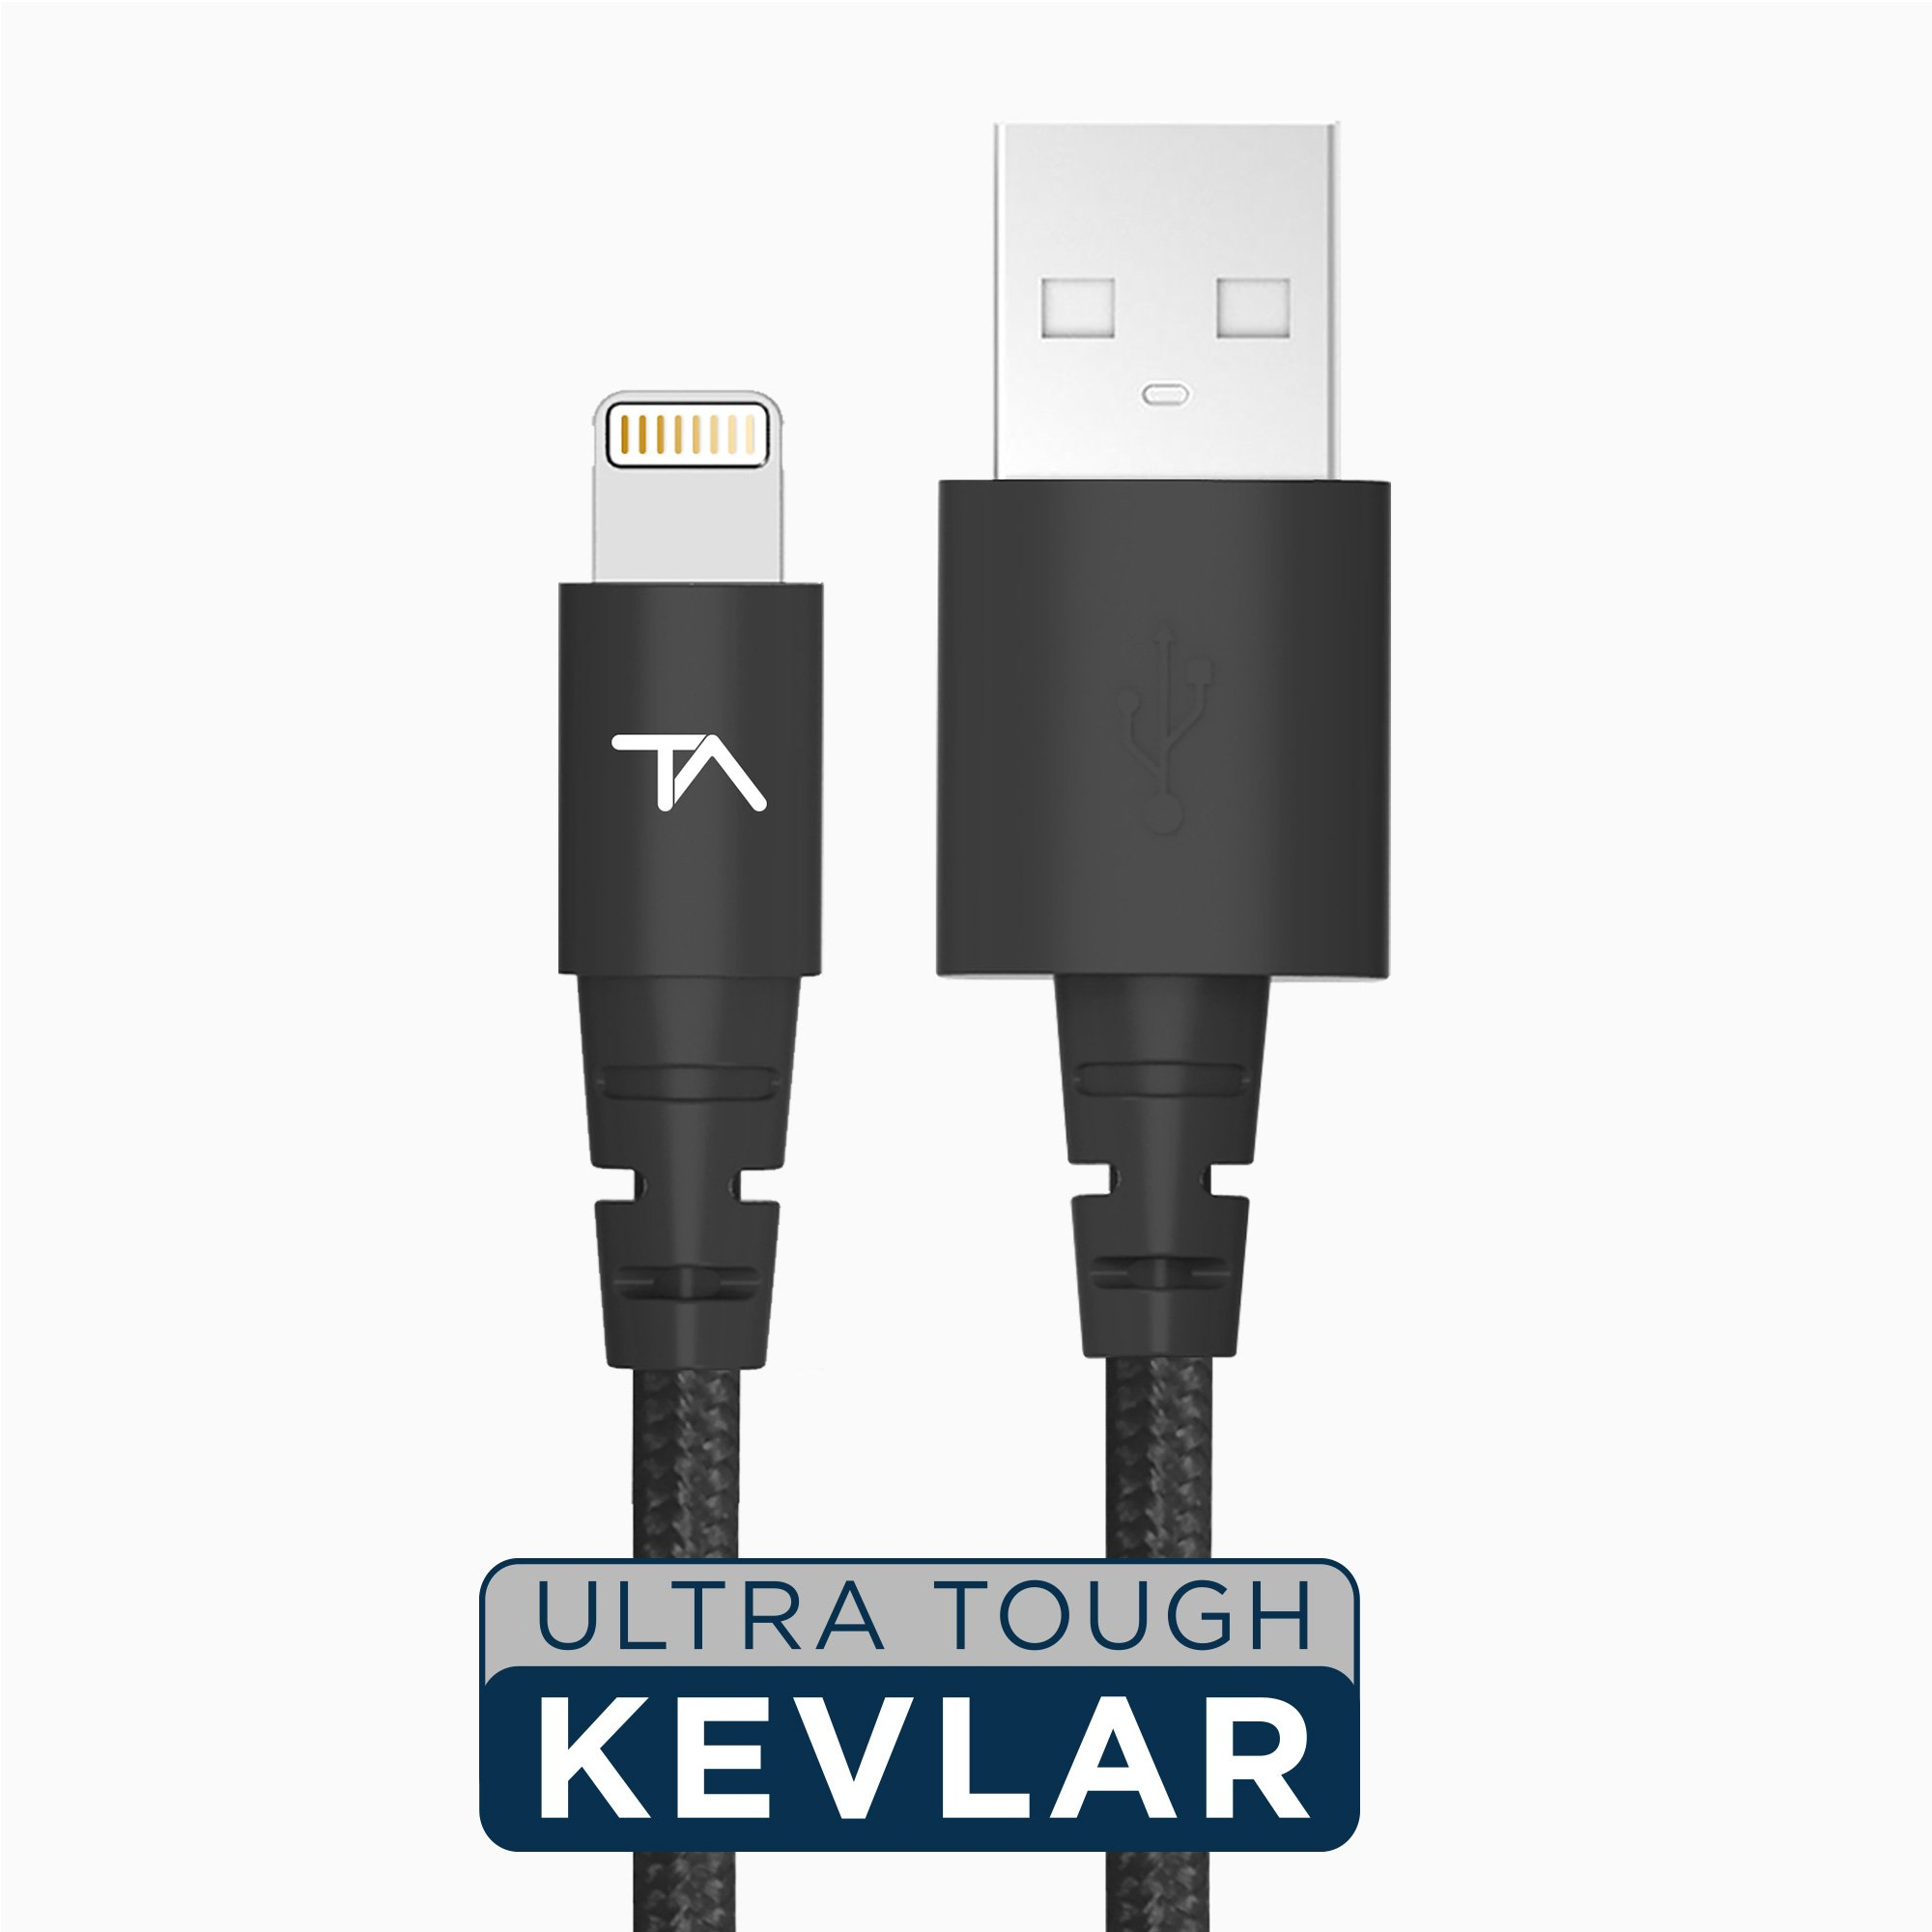 Tech Armor Apple MFi Certified Lightning to USB Sync/Charge Cable Compatible with iPhone or iPad, Made with Kevlar, Tough-Braided Extra-Strong Jacket, Black, 6 Feet